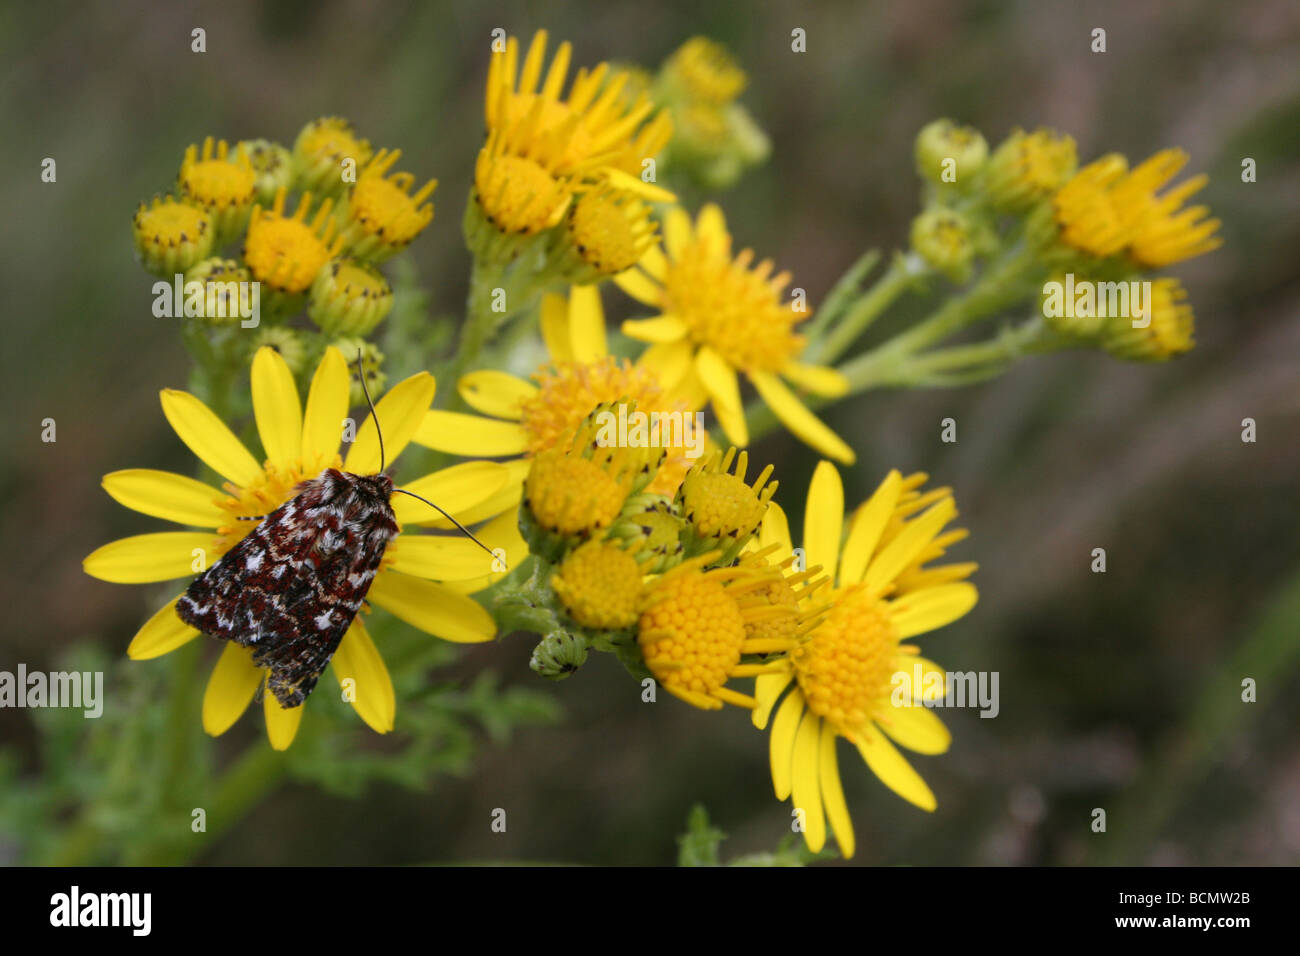 True Lover's Knot Moth Lycophotia porphyrea On Oxford Ragwort Cannock Chase, England, UK - Stock Image